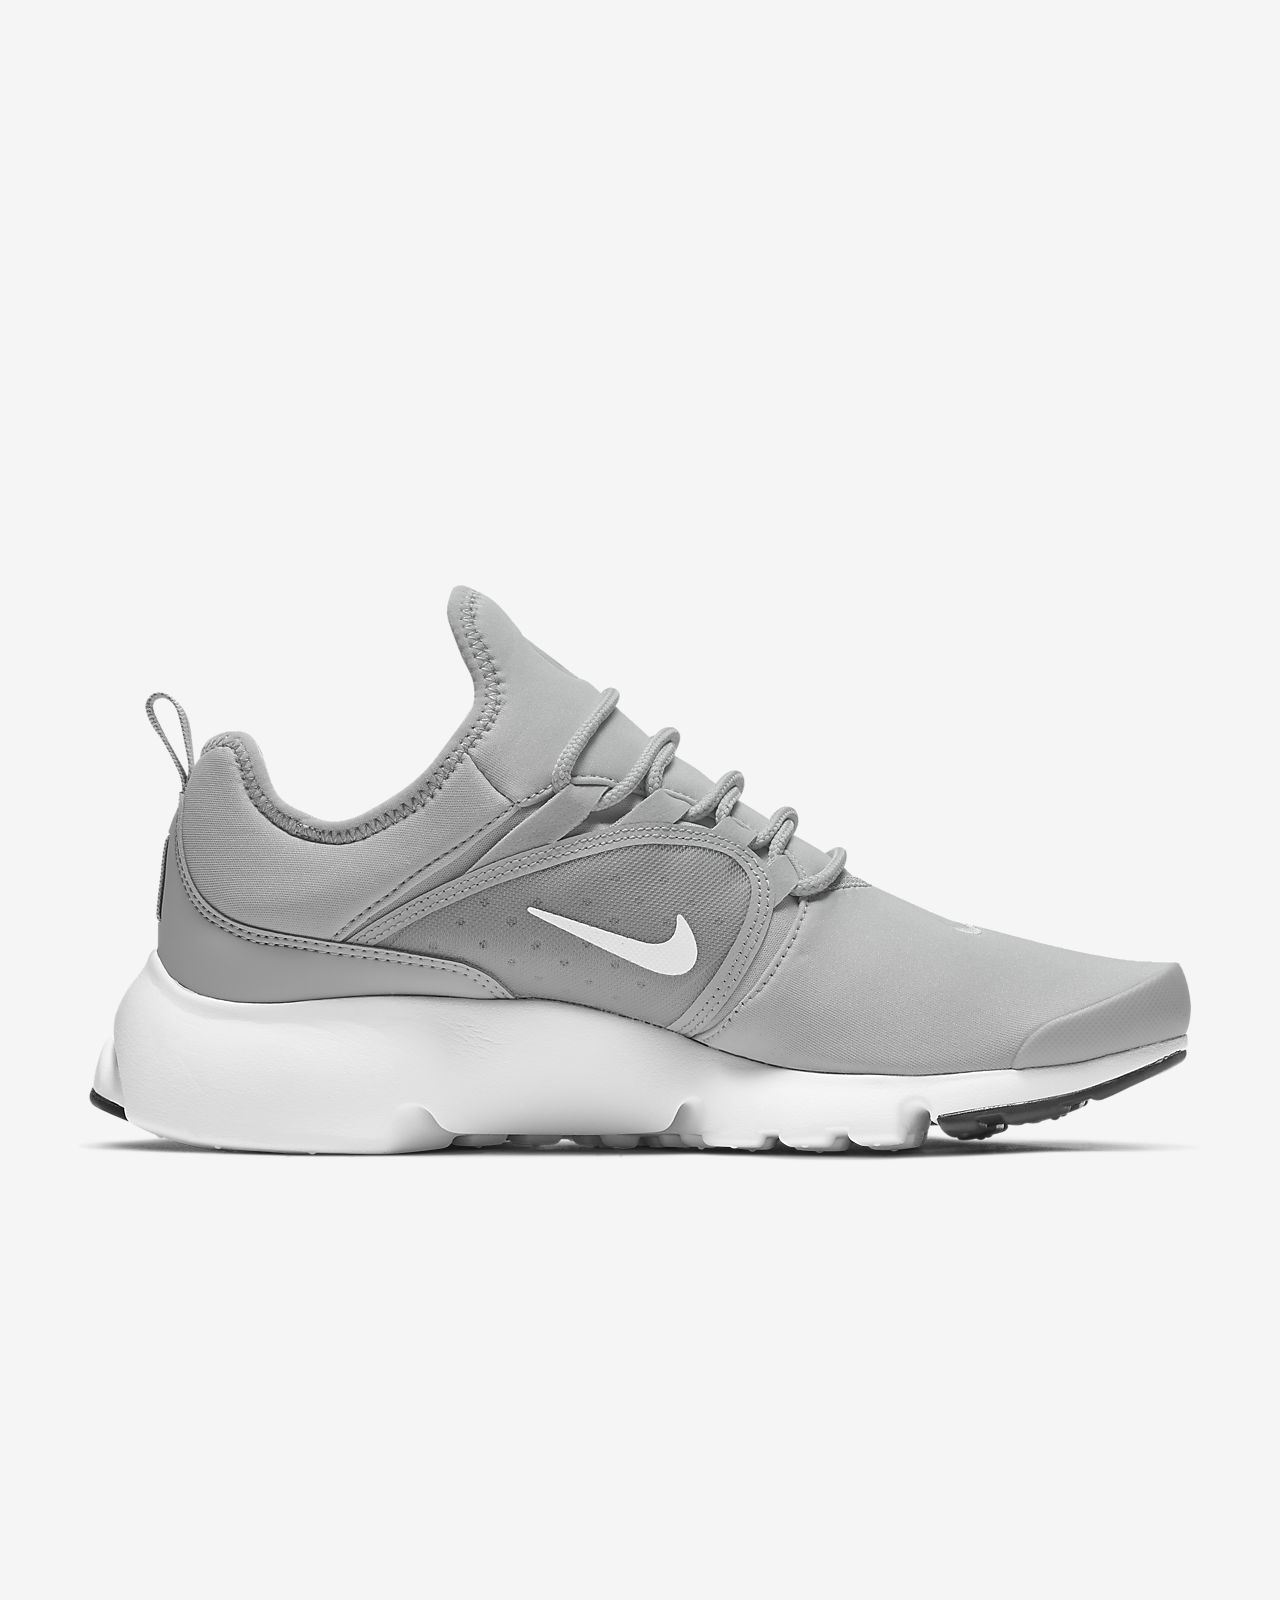 new concept 44ead 1af47 ... Chaussure Nike Presto Fly World pour Homme